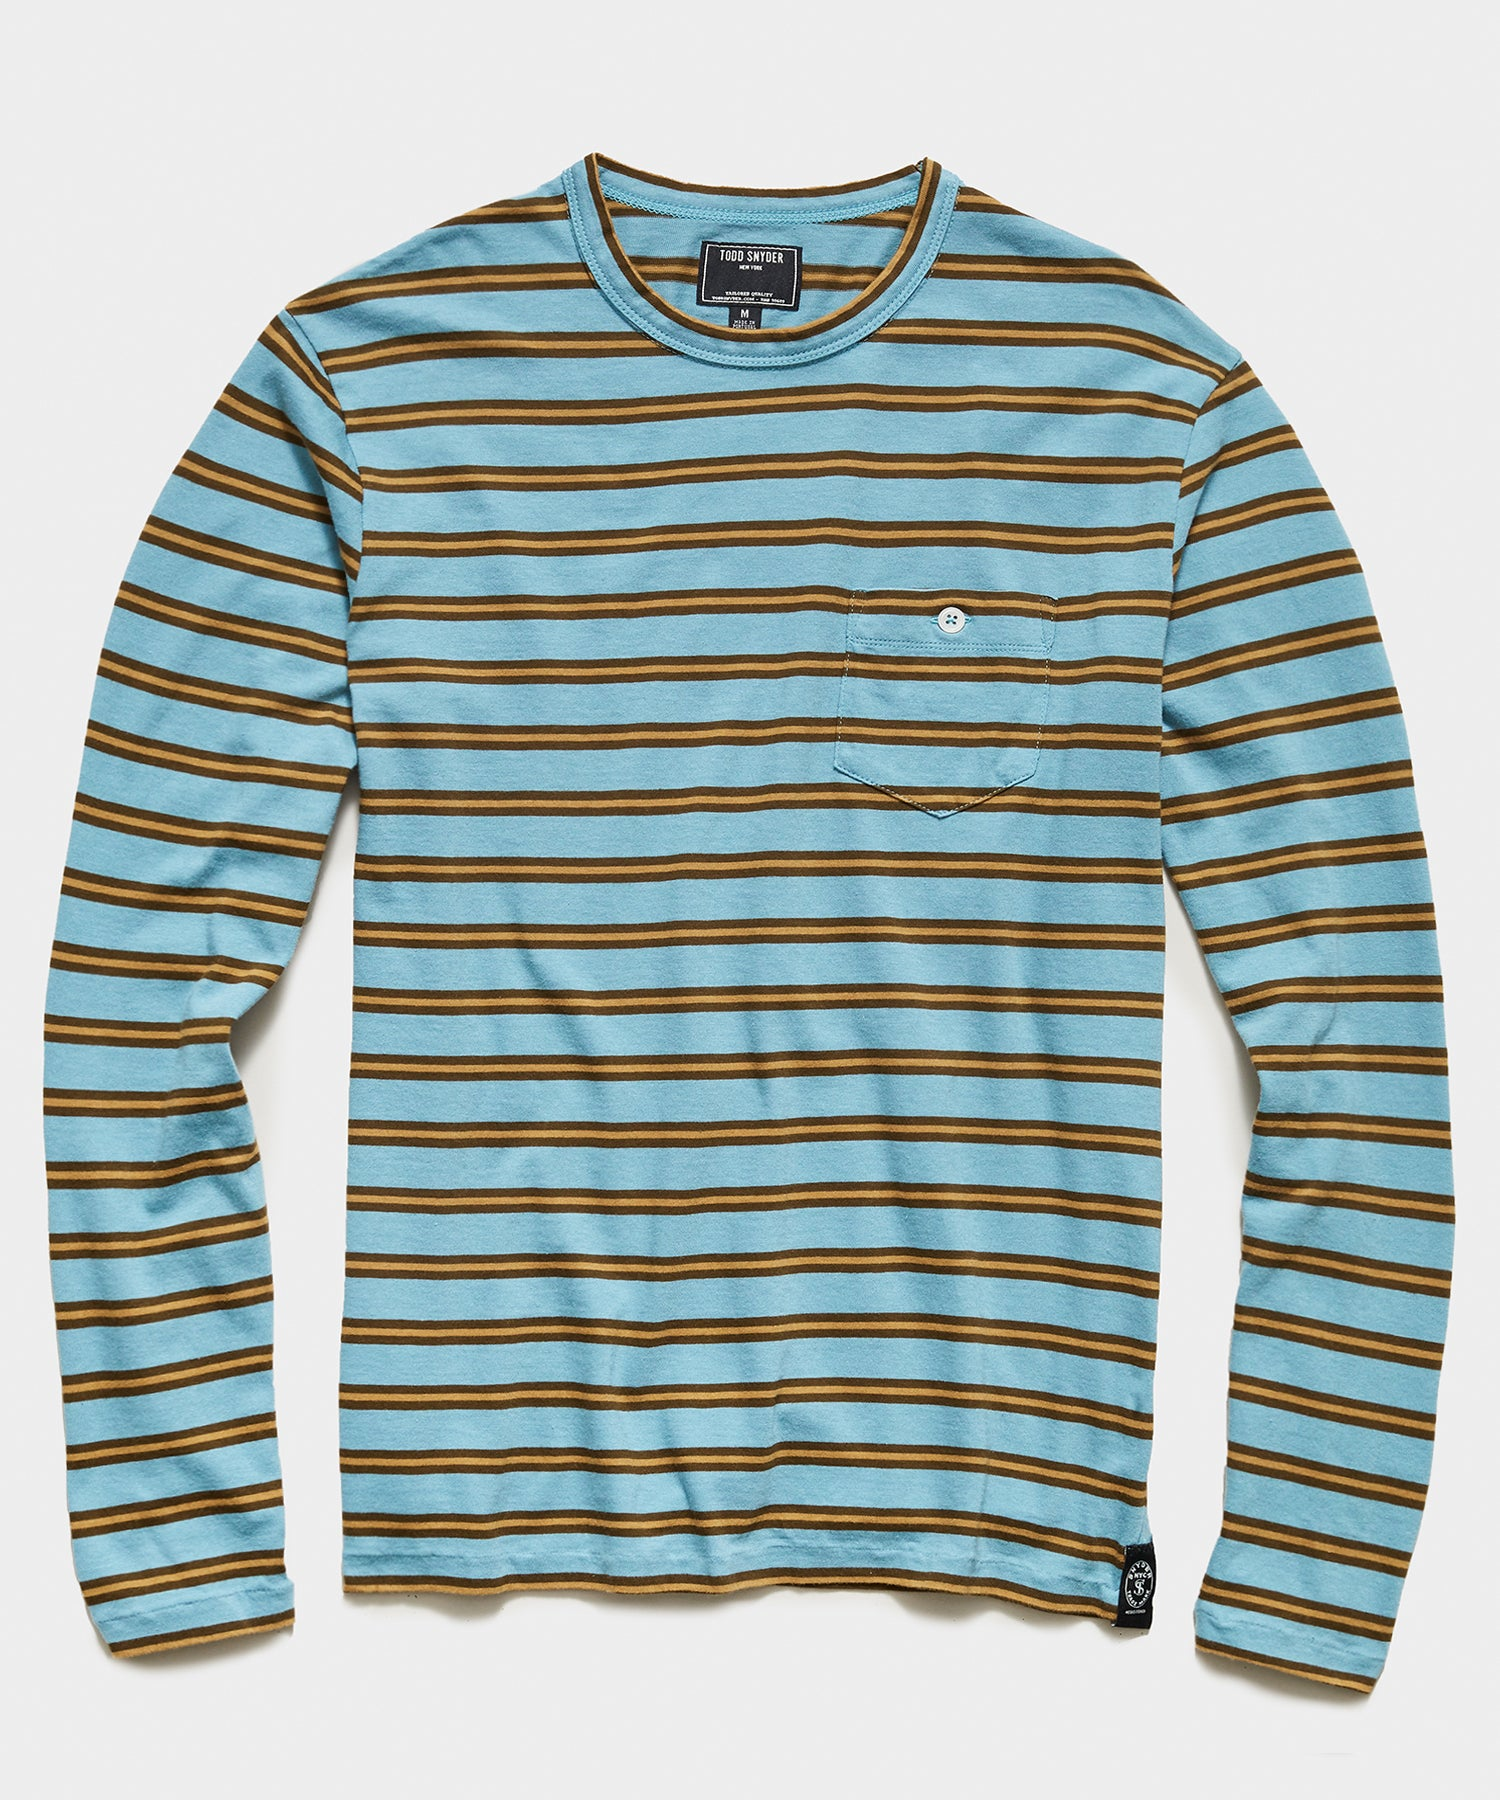 Long Sleeve Grant Stripe Pocket Tee in Blue and Gold